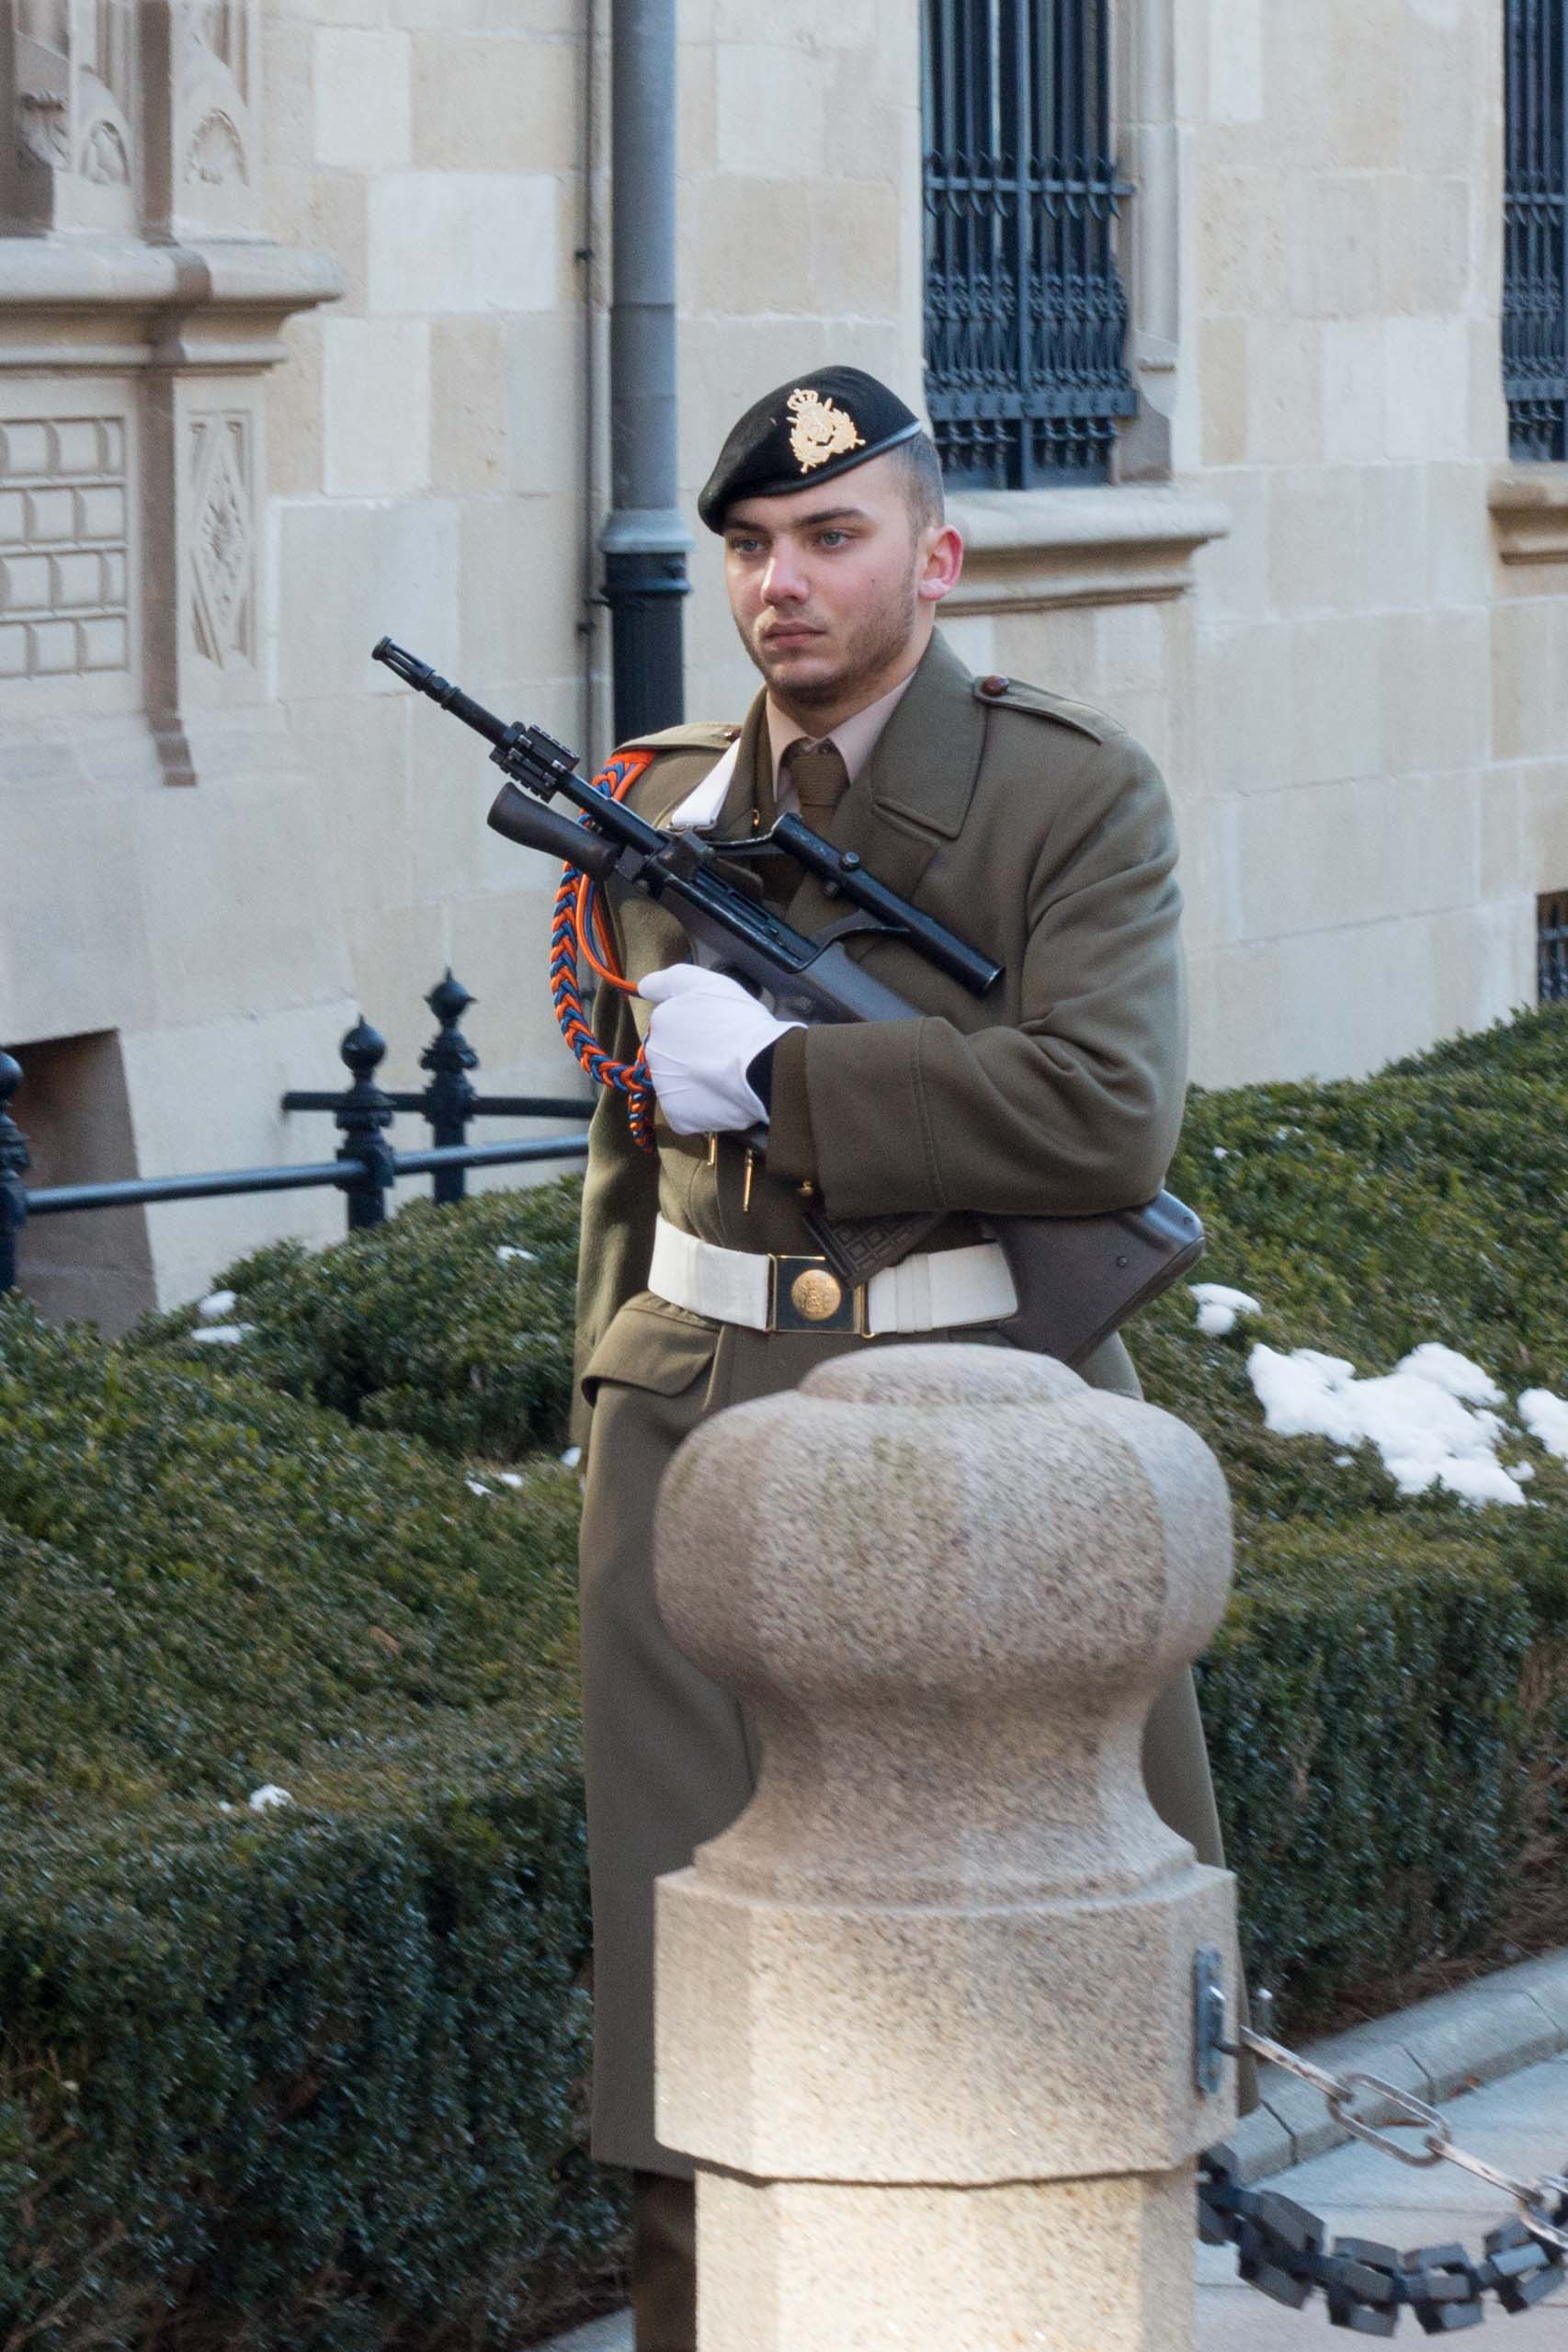 The lonely guard in front of the royal residence in the city.